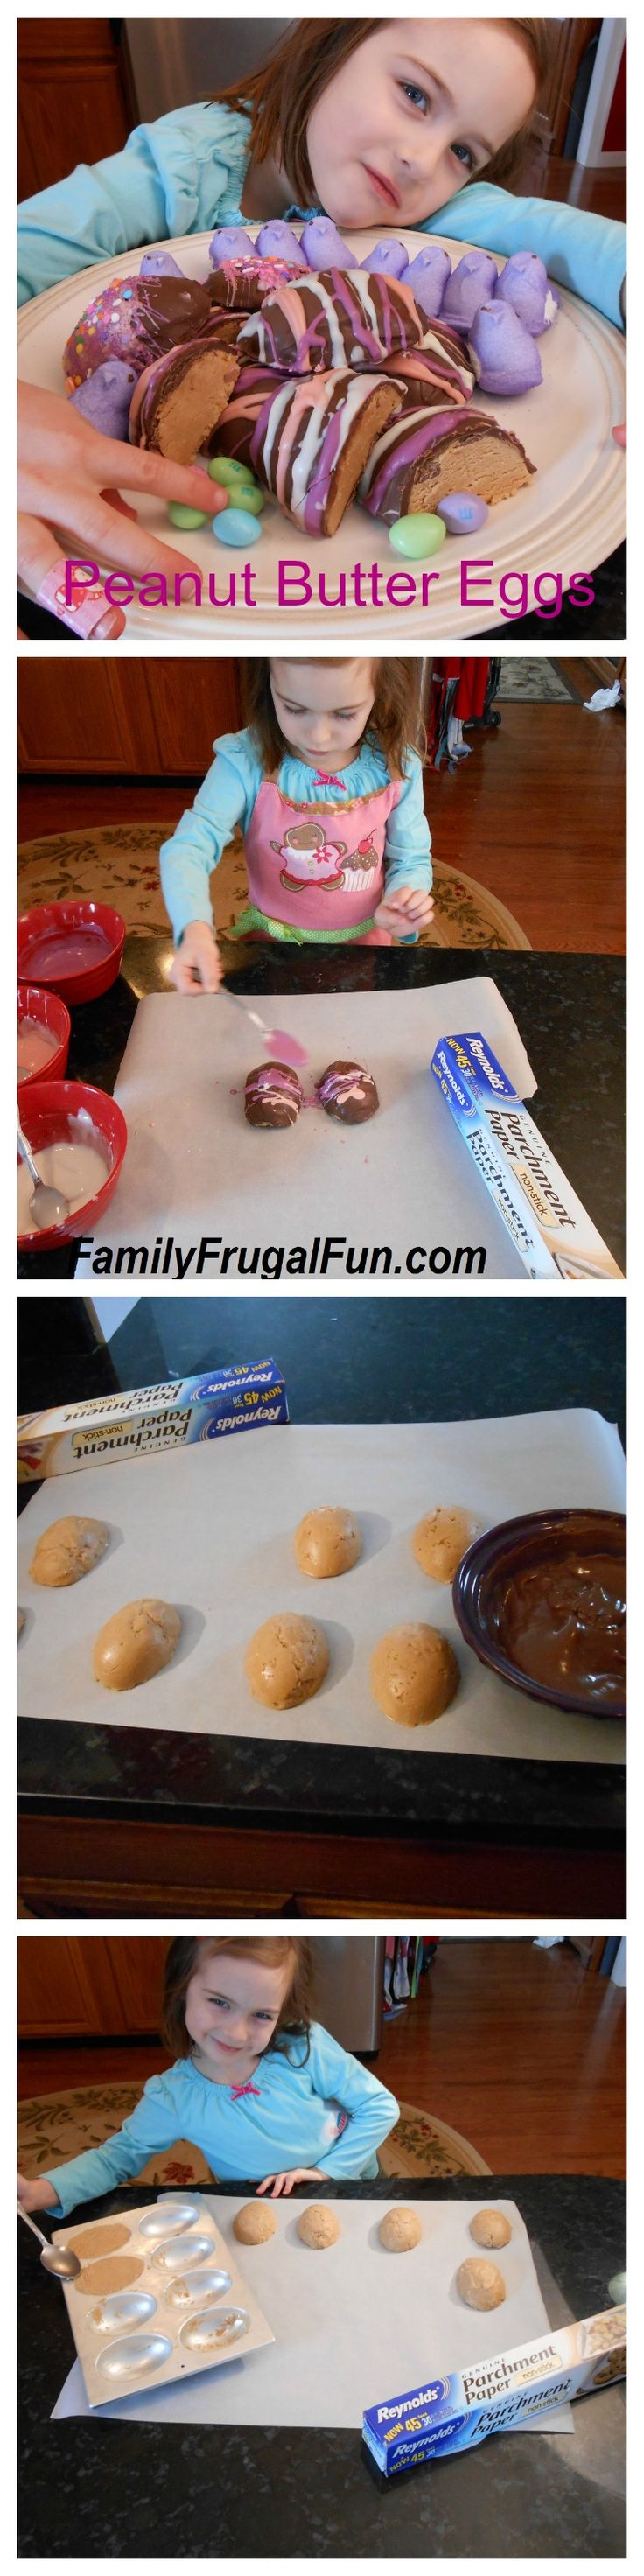 "Homemade Chocolate Covered Peanut Butter Easter Eggs. This is a ""no bake"" recipe that is so easy to make you can do it with your 4 year old like I did. Happy Easter!"